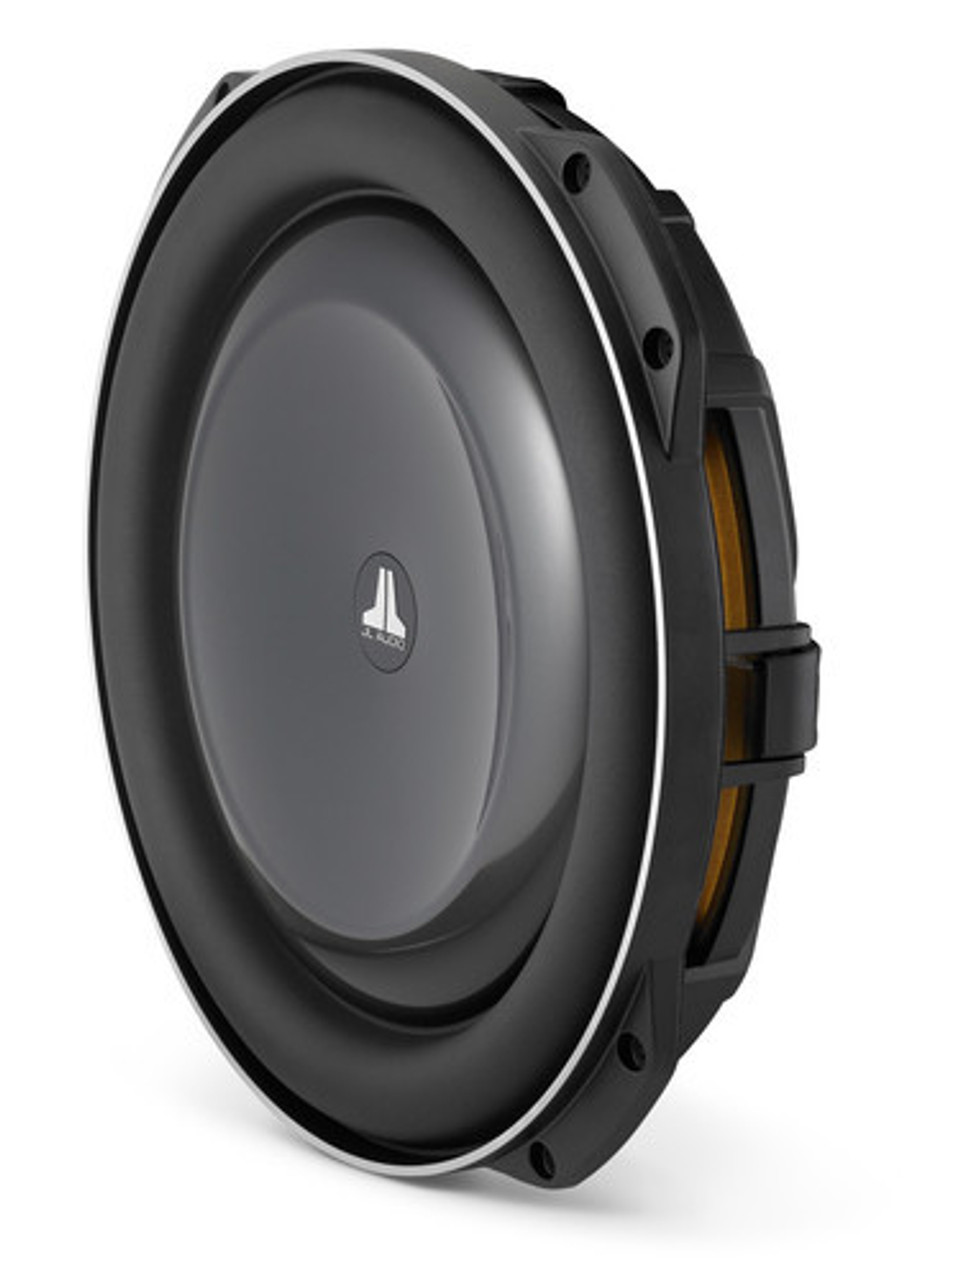 13 Inch Subwoofers